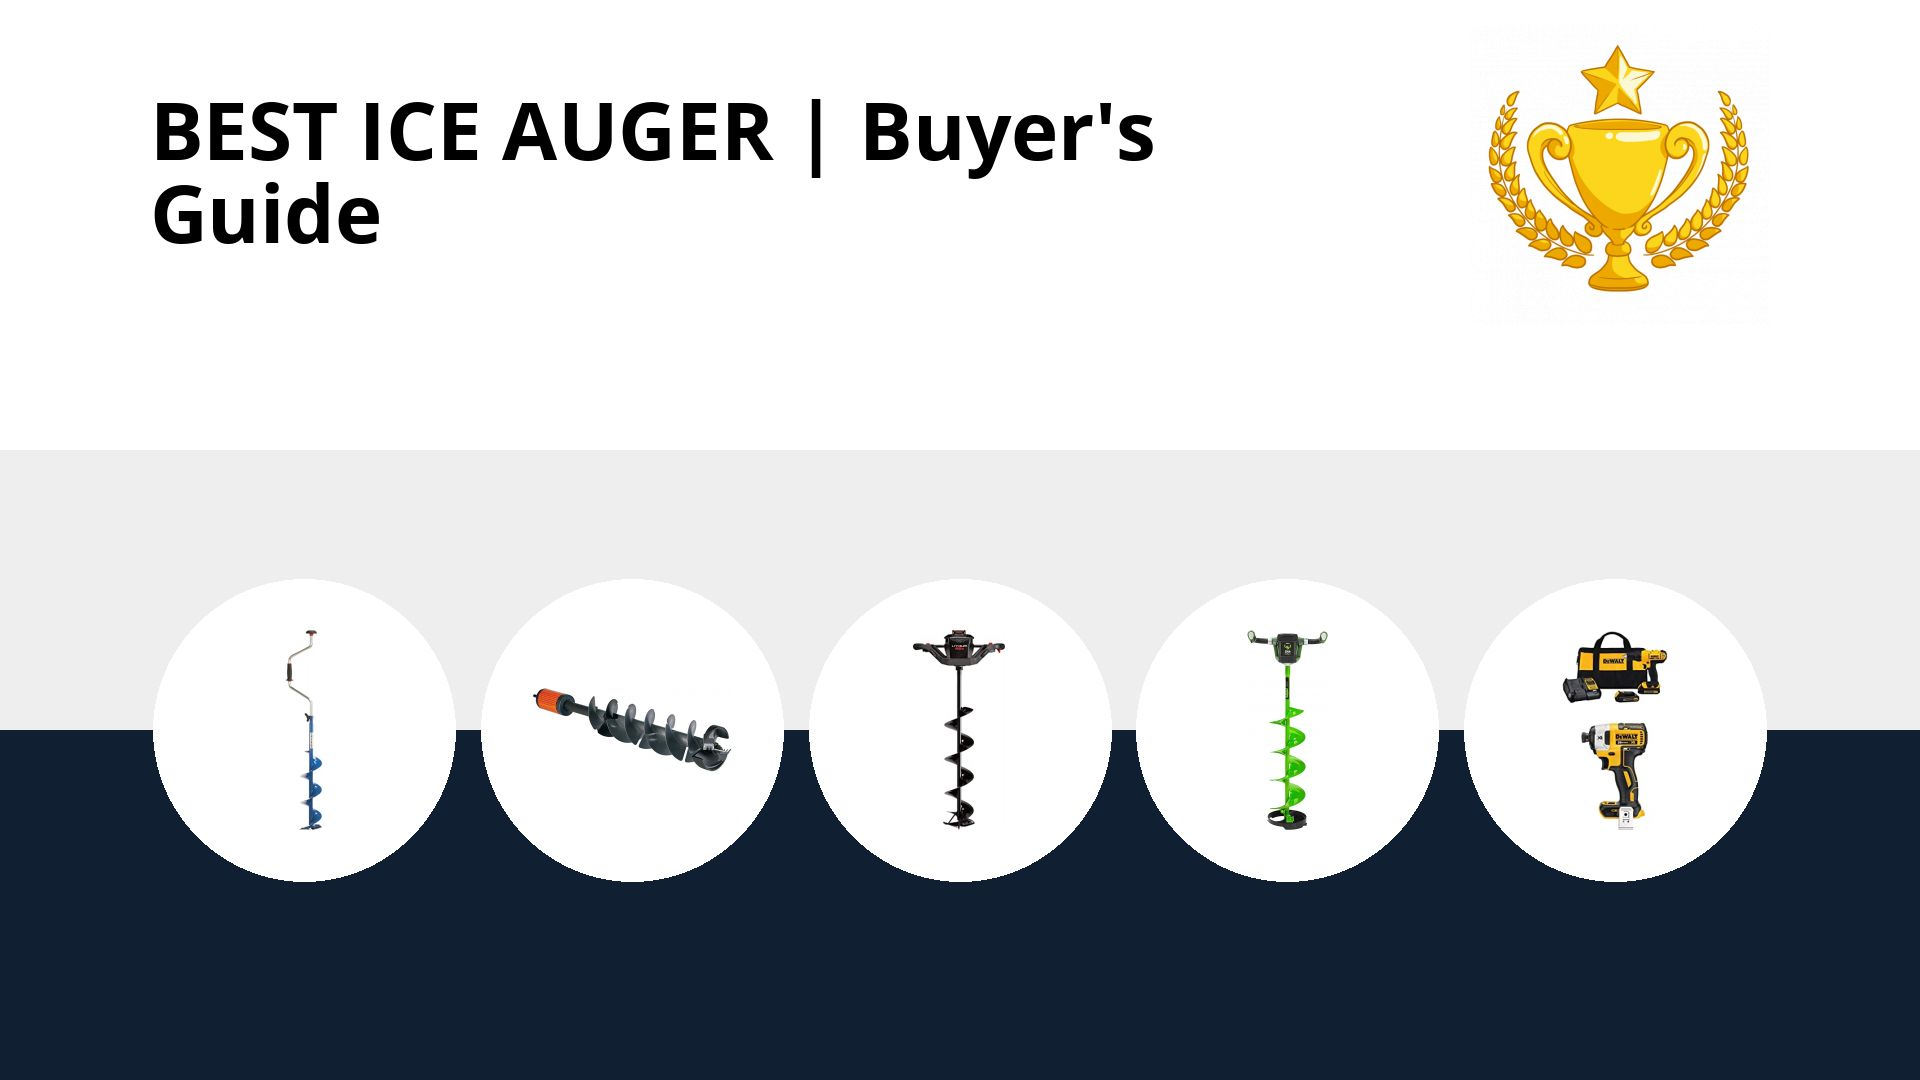 Best Ice Auger: image